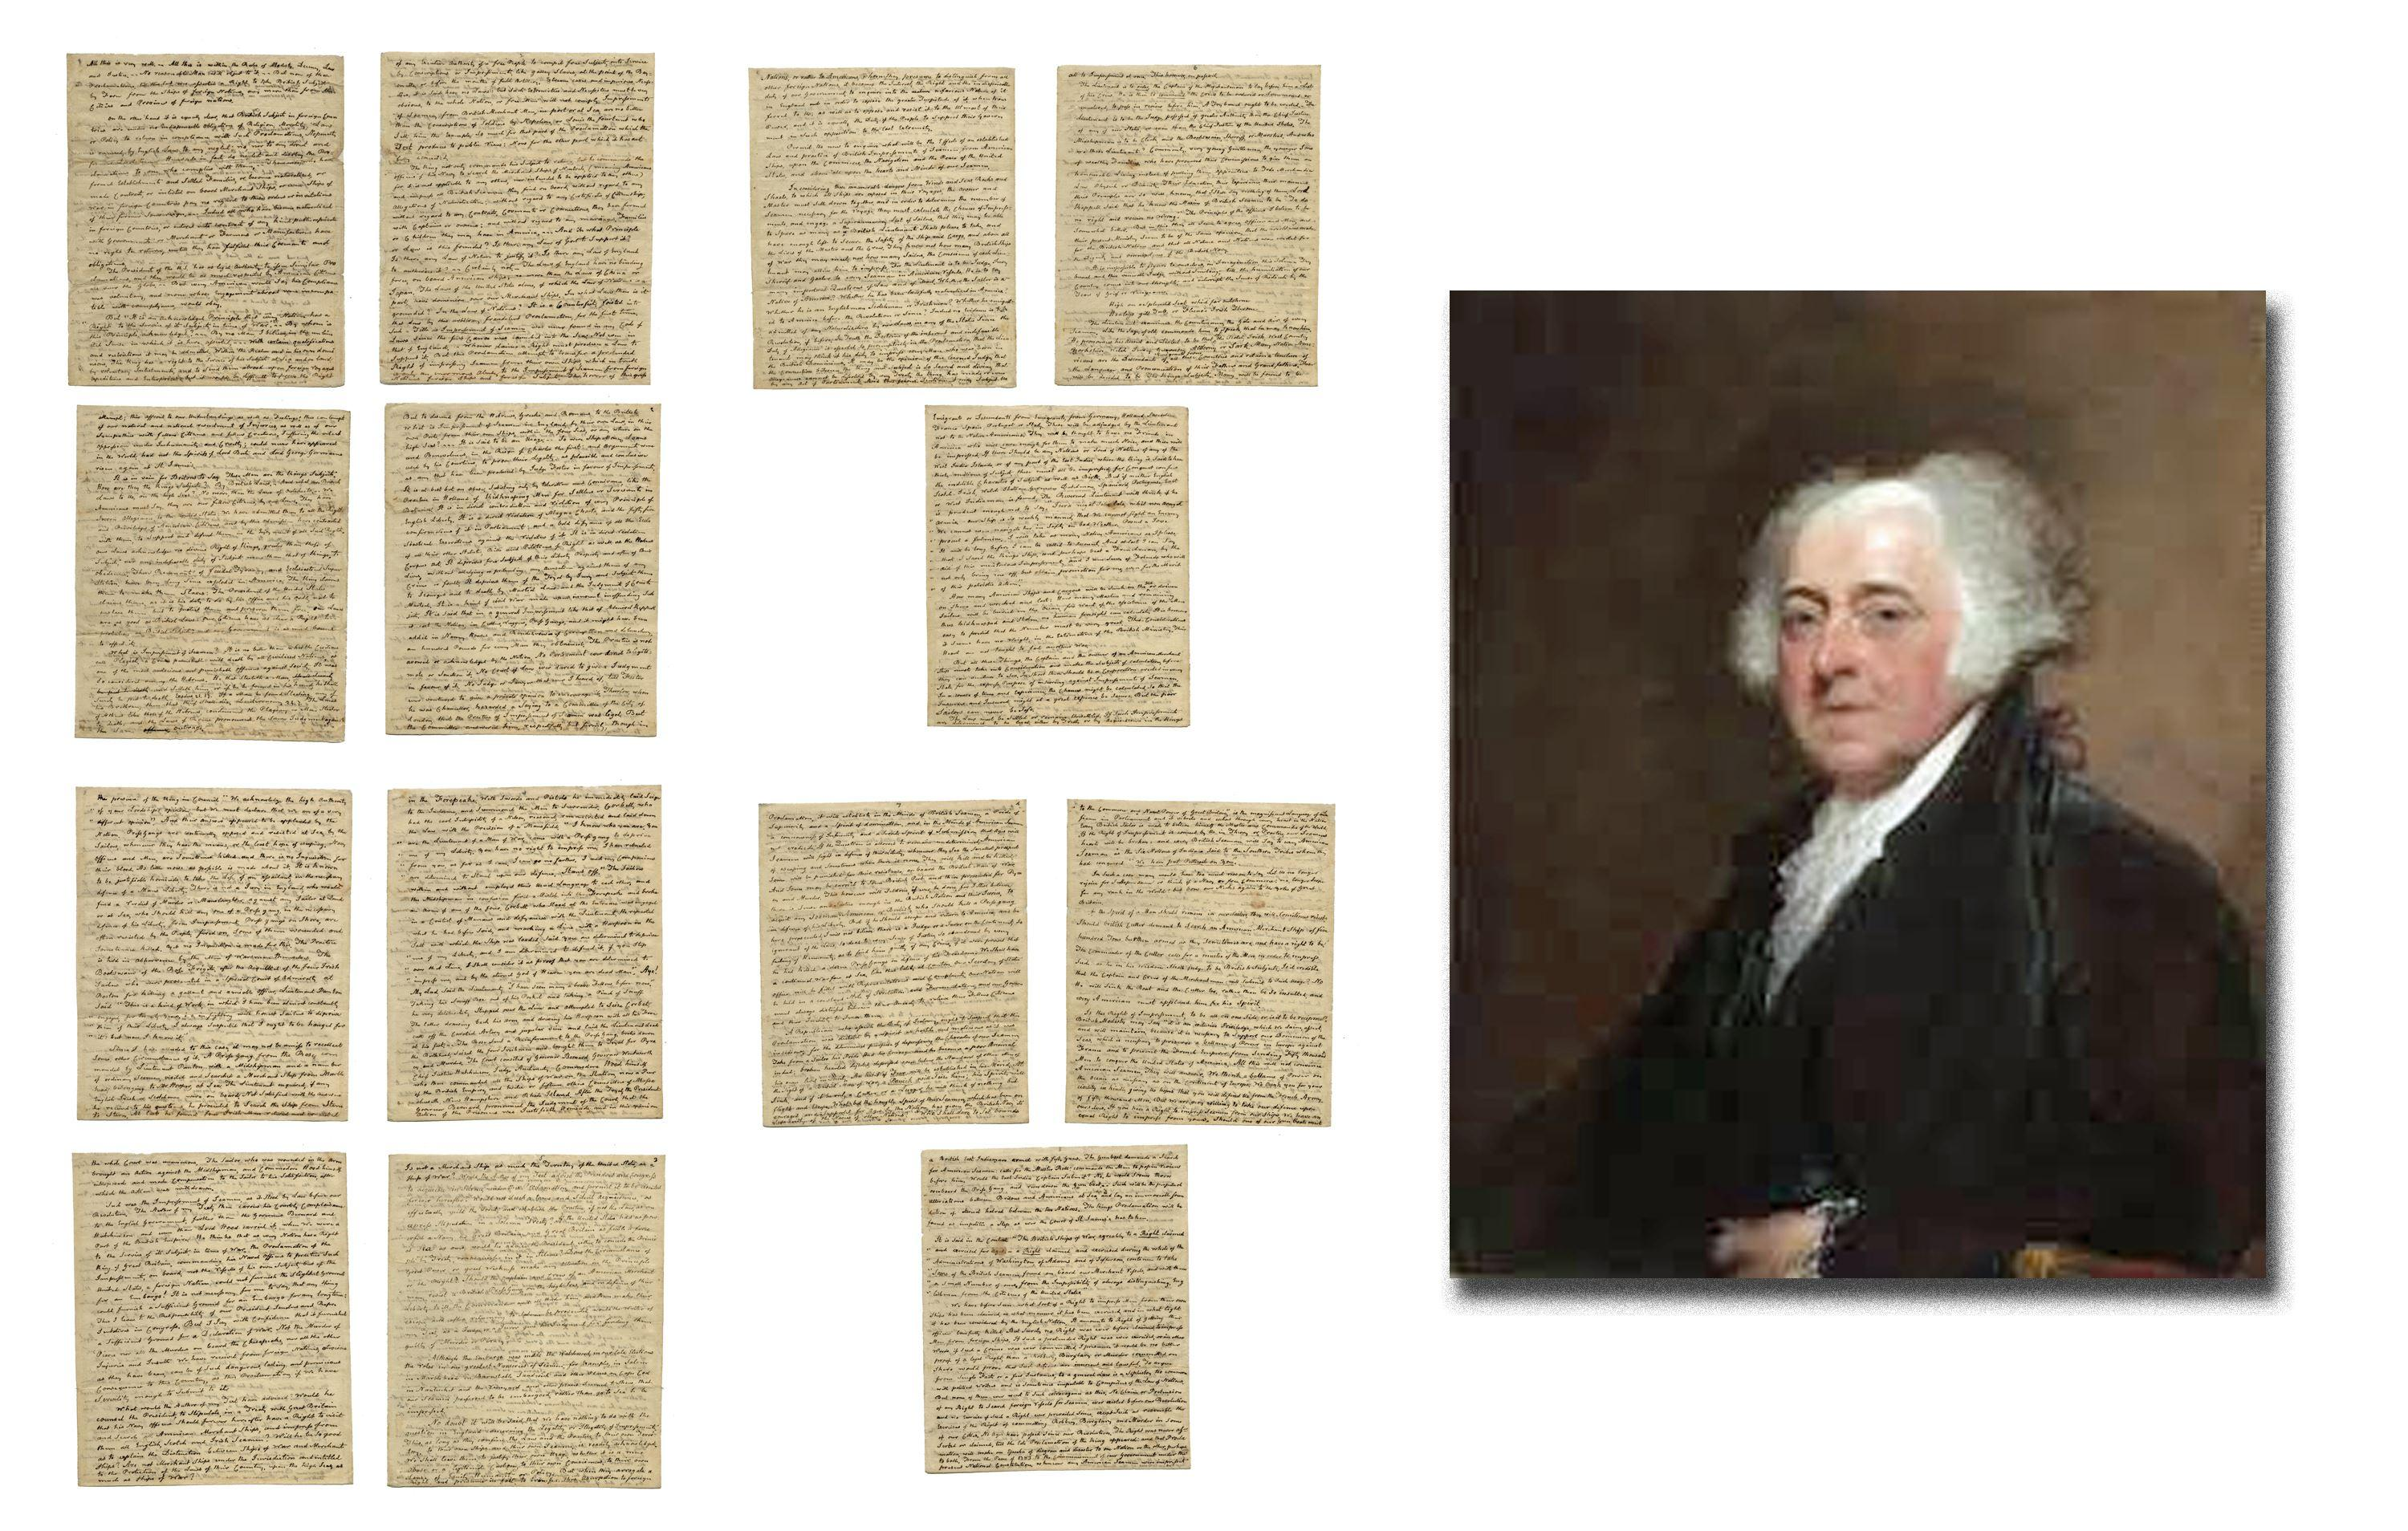 John Adams Lengthy Manifesto Defending American Sovereignty, Supporting Jefferson & Demolishing Apologists for King George III's Proclamation Allowing Impressment of American Sailors